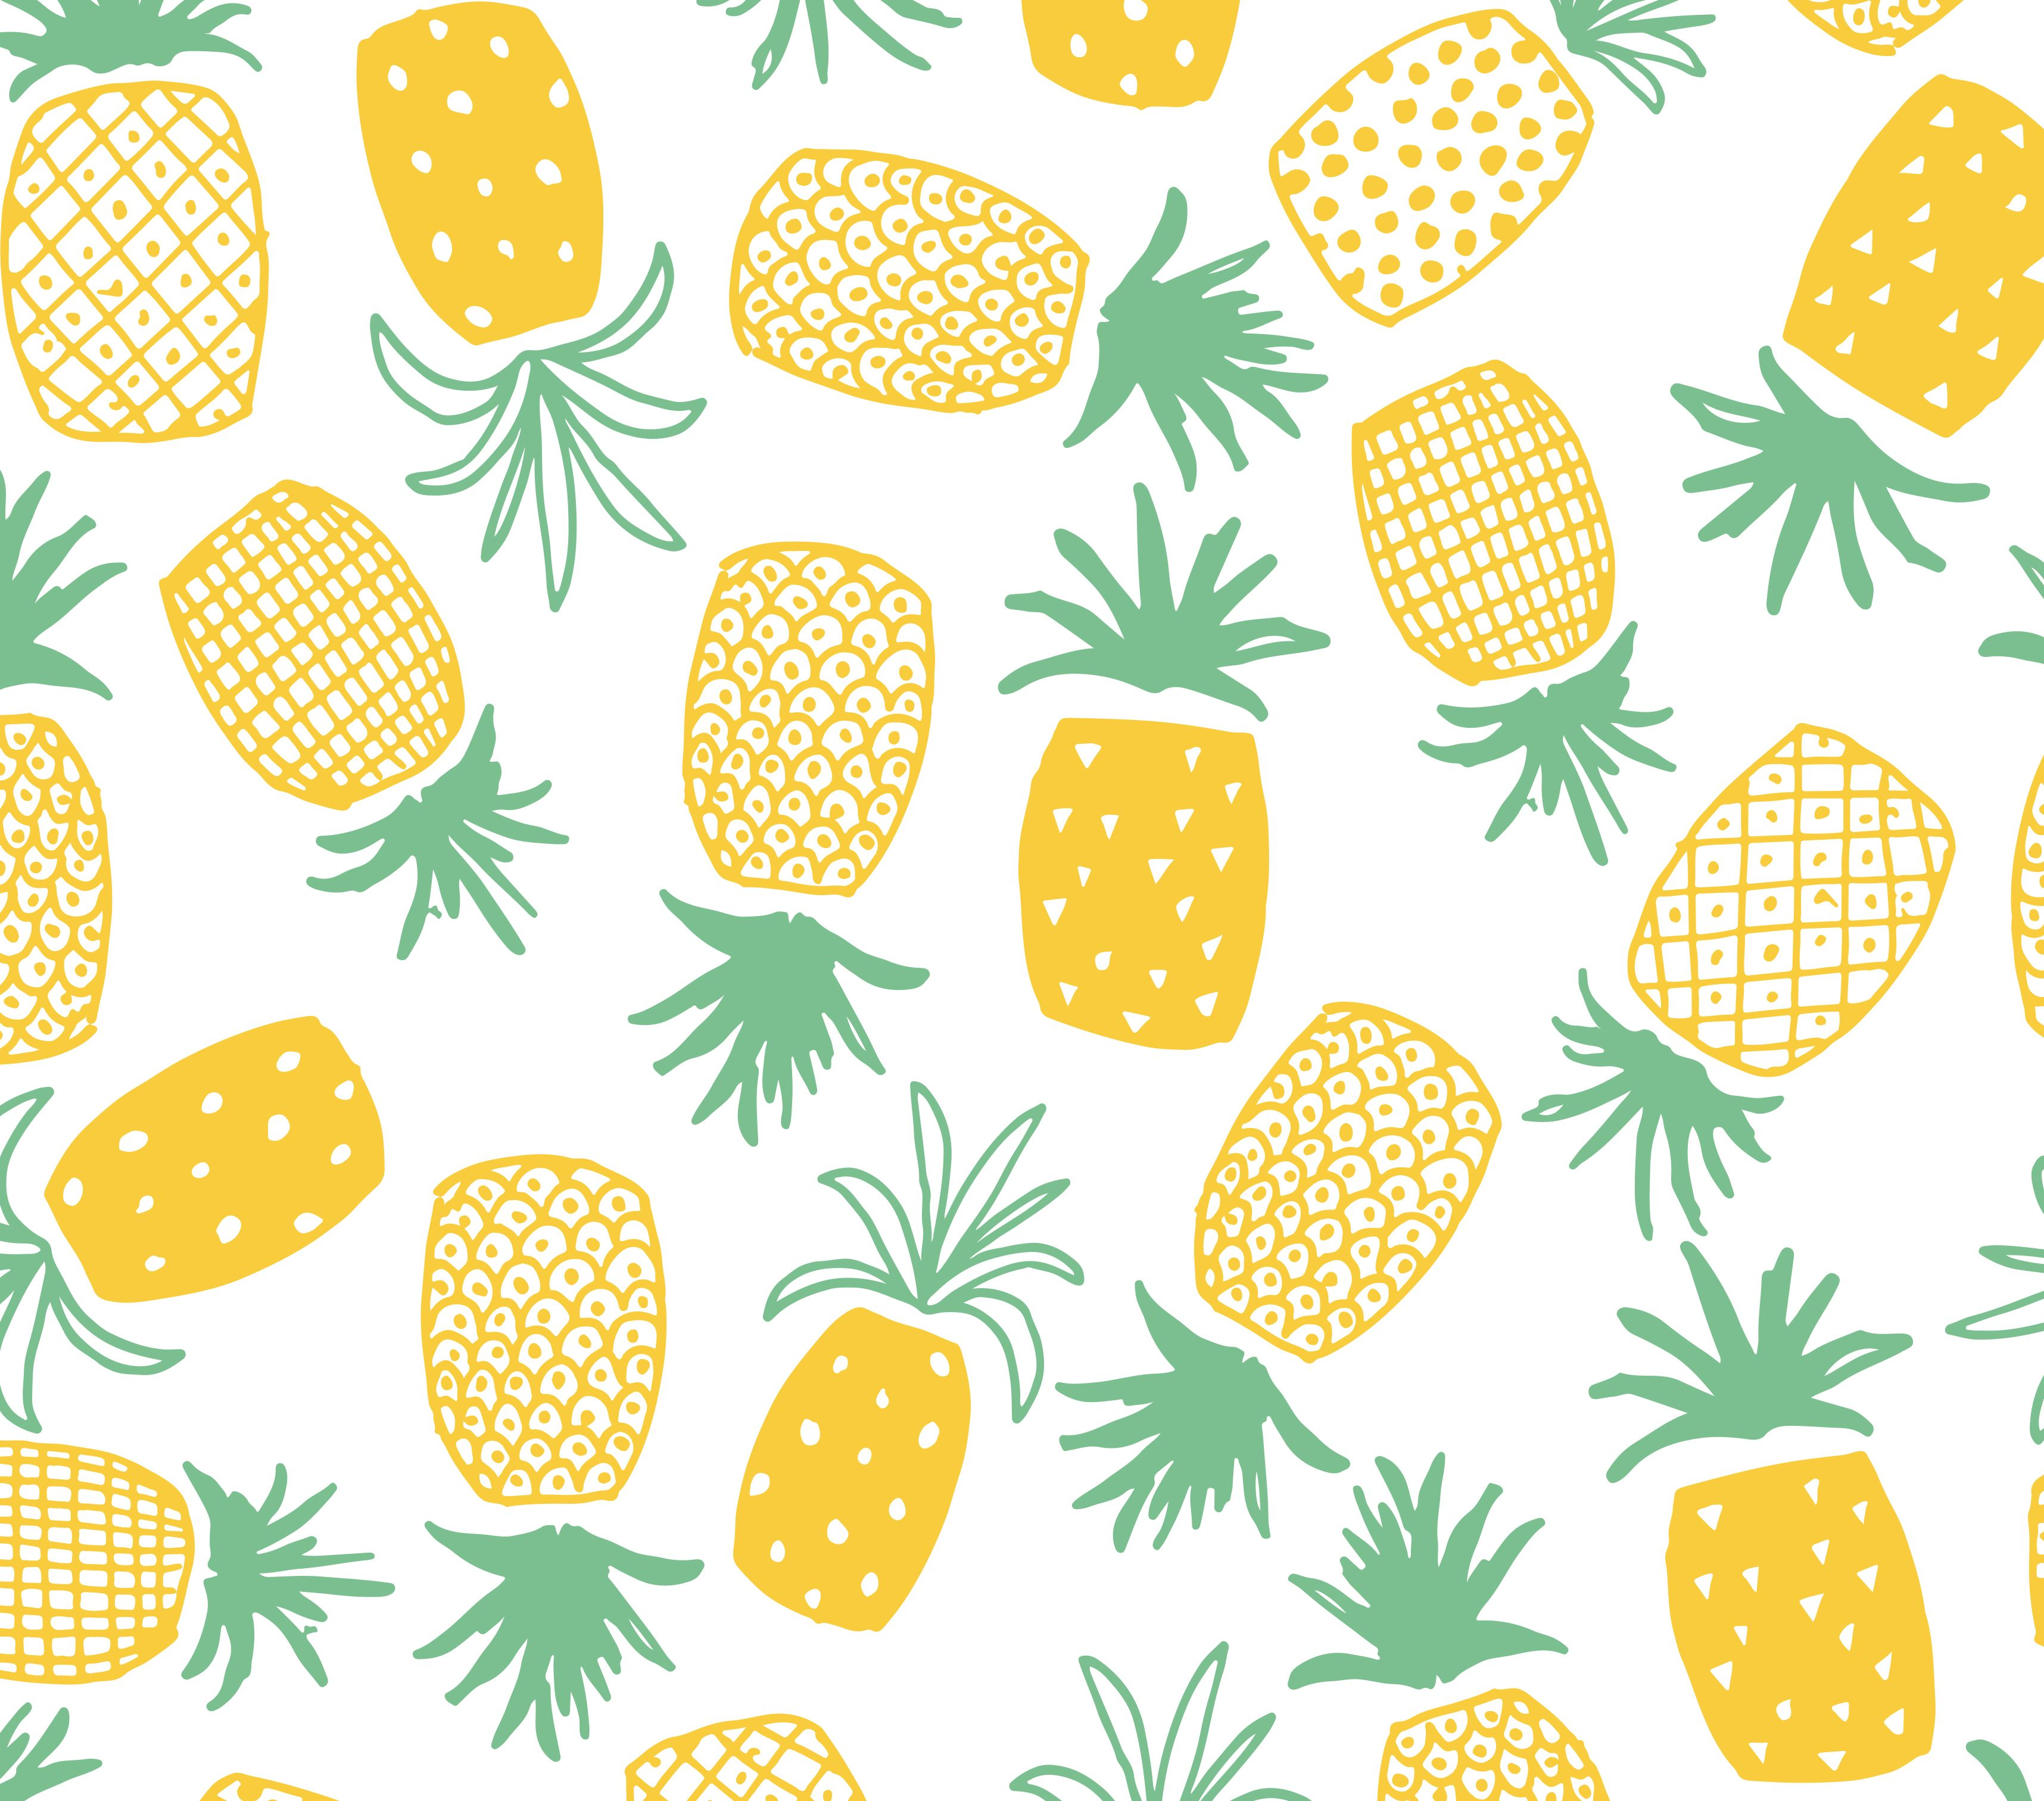 Pineapple pattern clipart png black and white download Pineapple Print Seamless Pattern | ✏ Patterns and Prints ... png black and white download